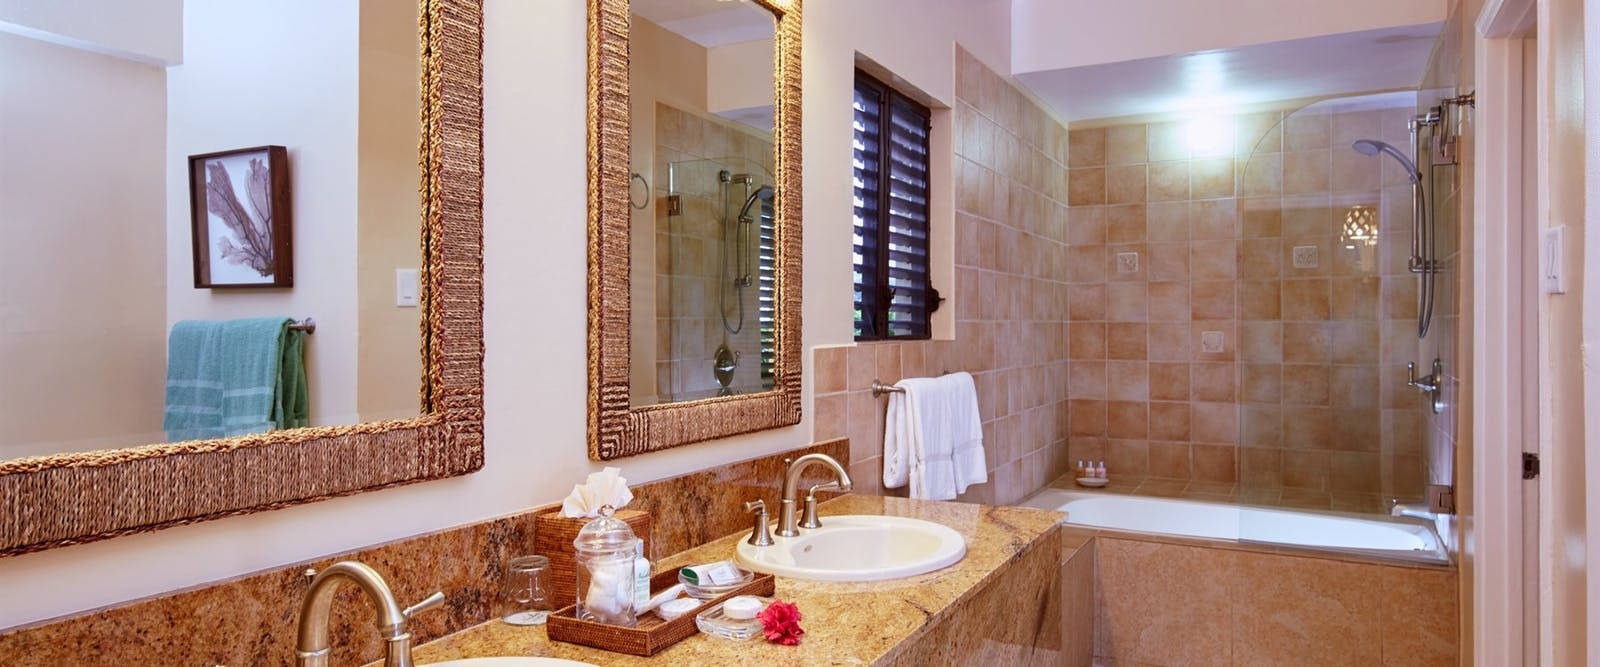 Bathroom at Nisbet Plantation Beach Club, Nevis